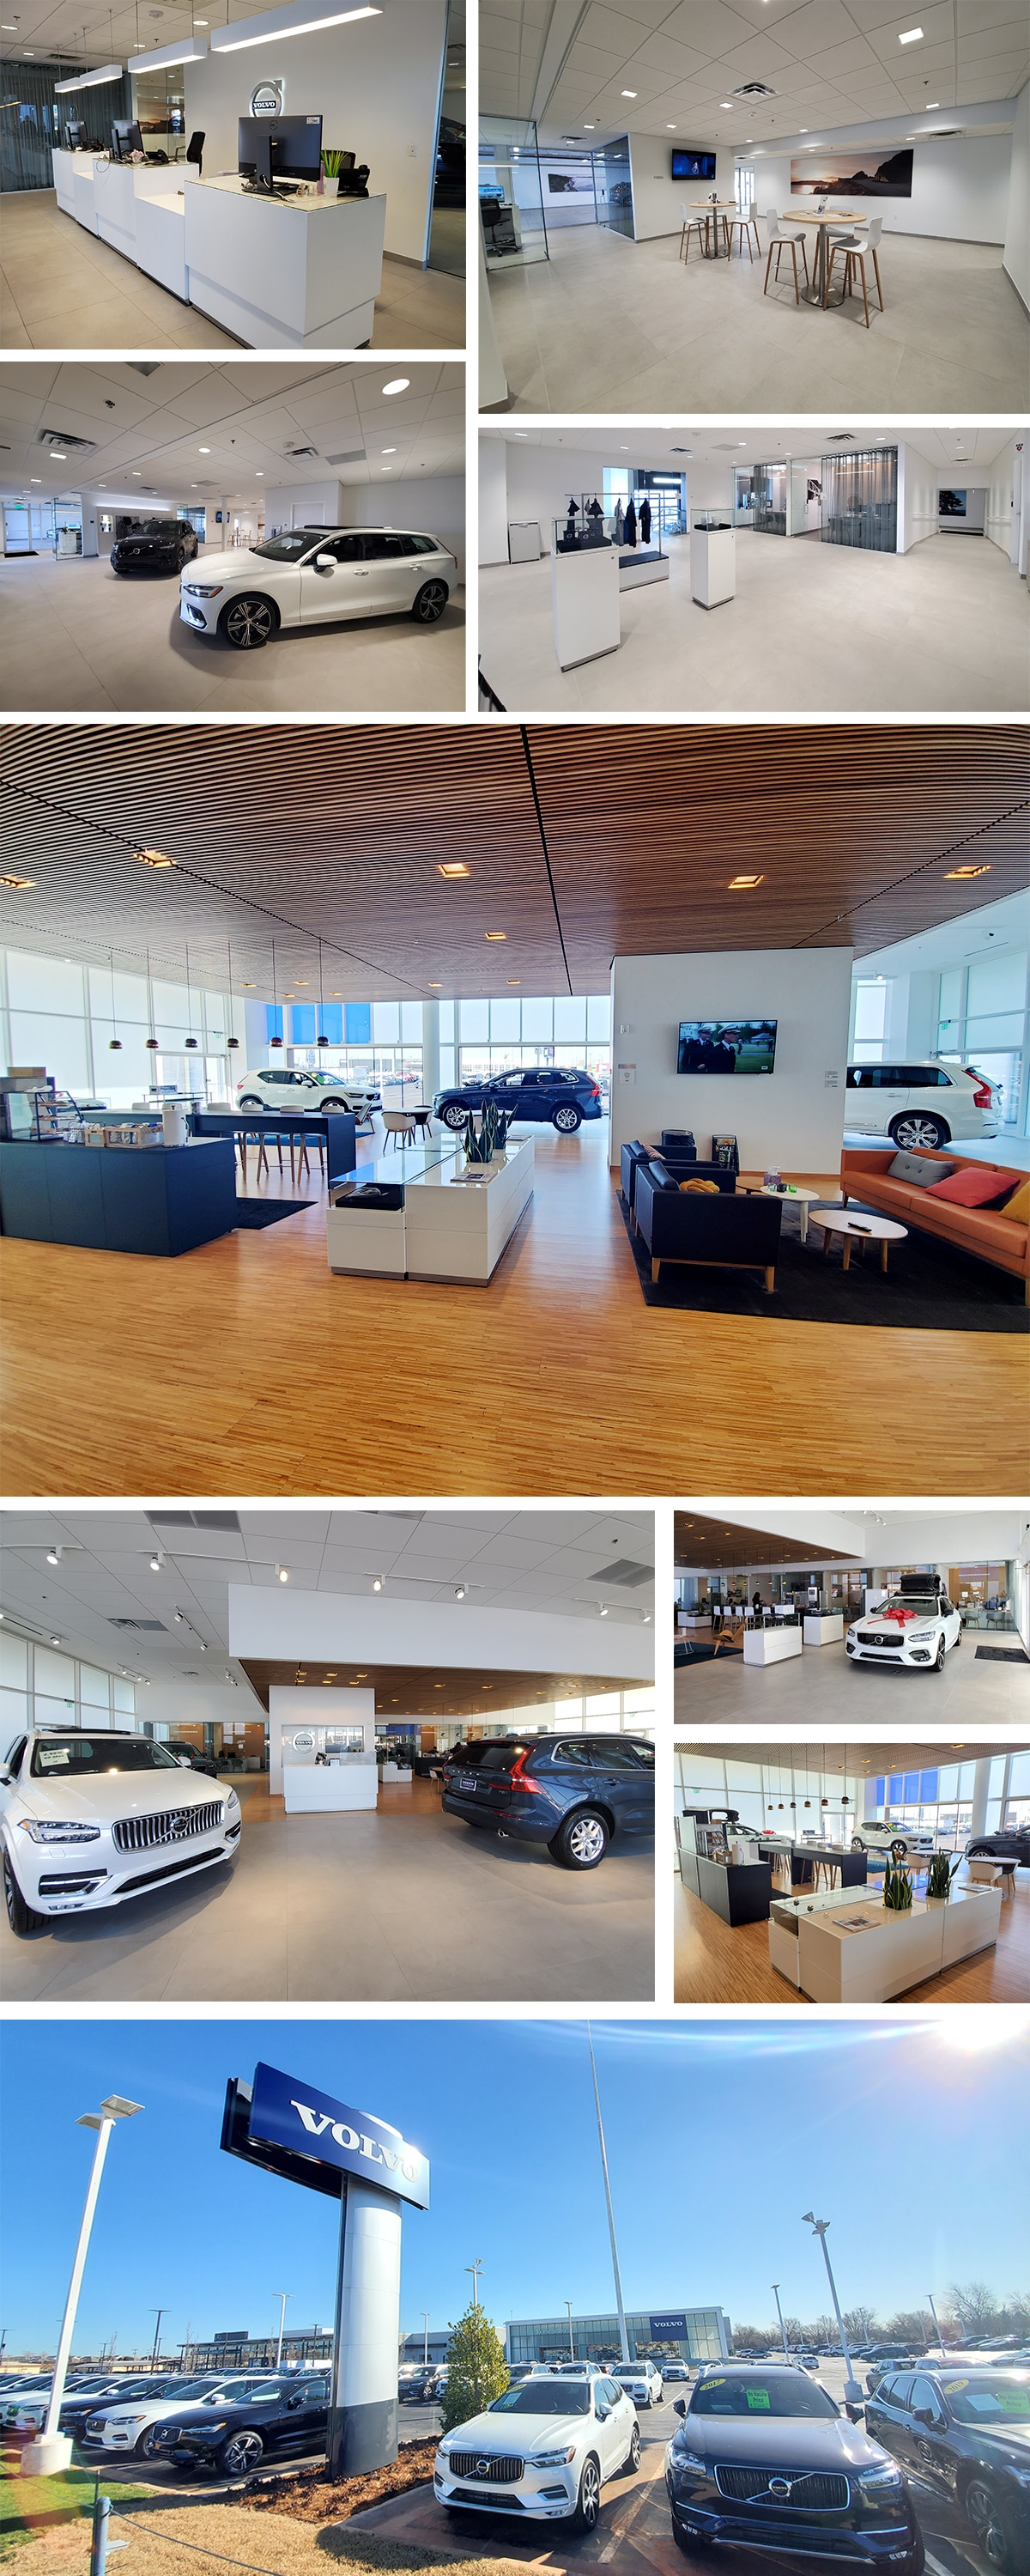 Volvo Cars Oklahoma City - Your Premier Volvo Dealership Sales and Service Center